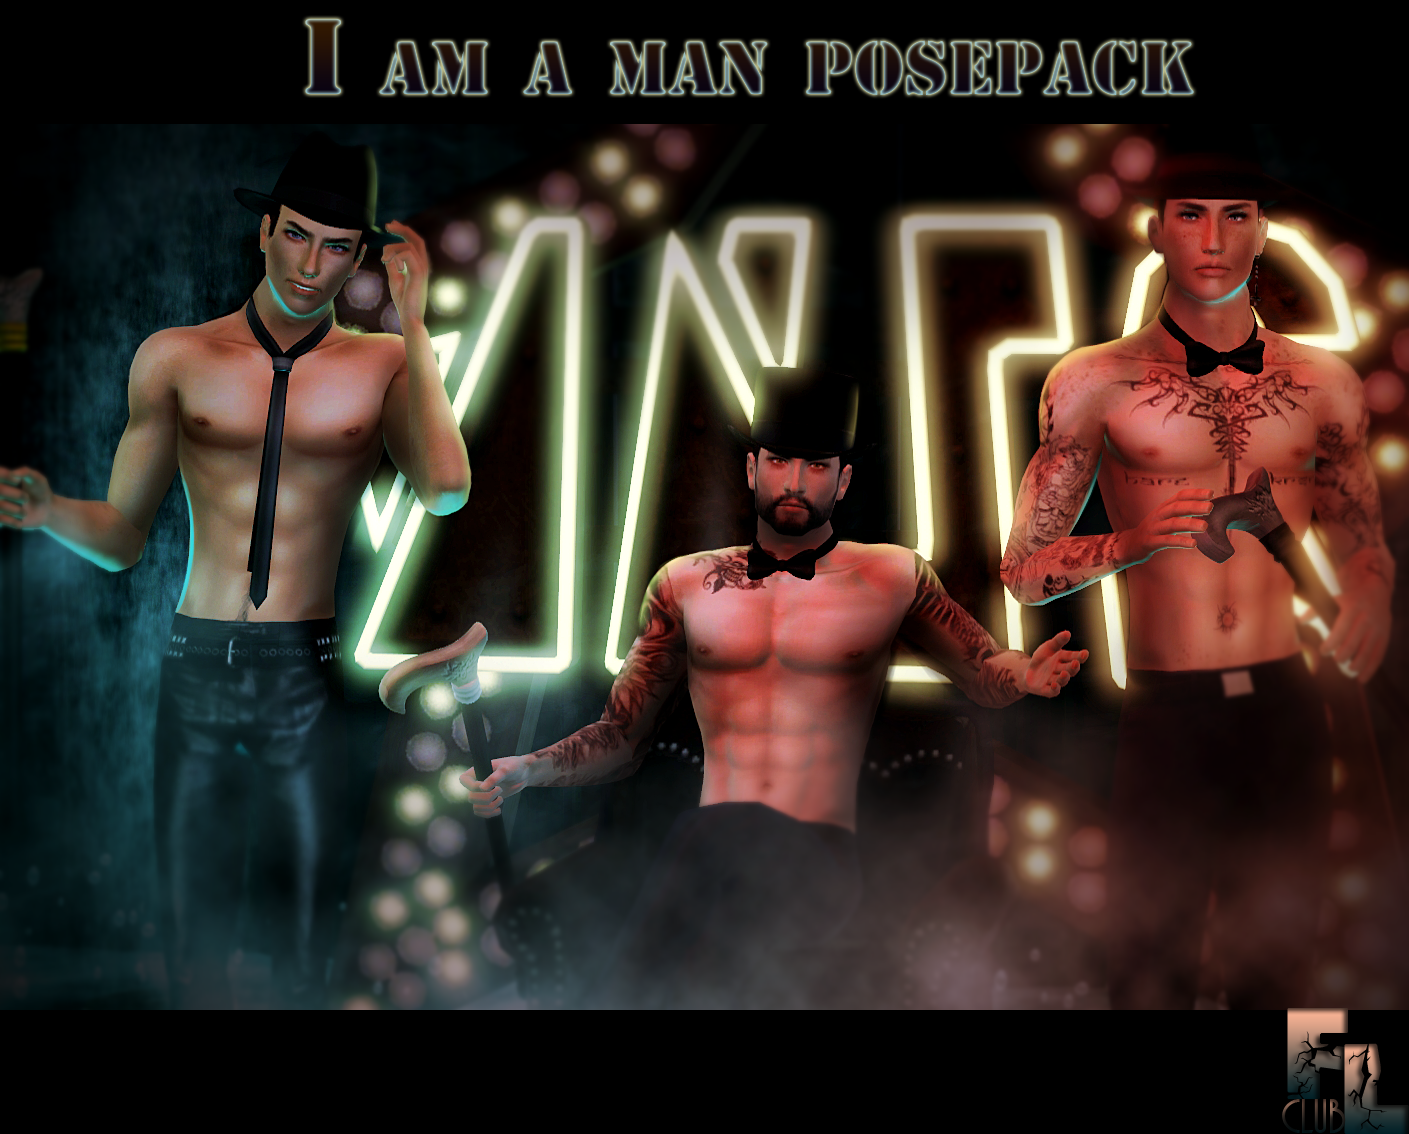 I am a man Posepack by F&L cLub